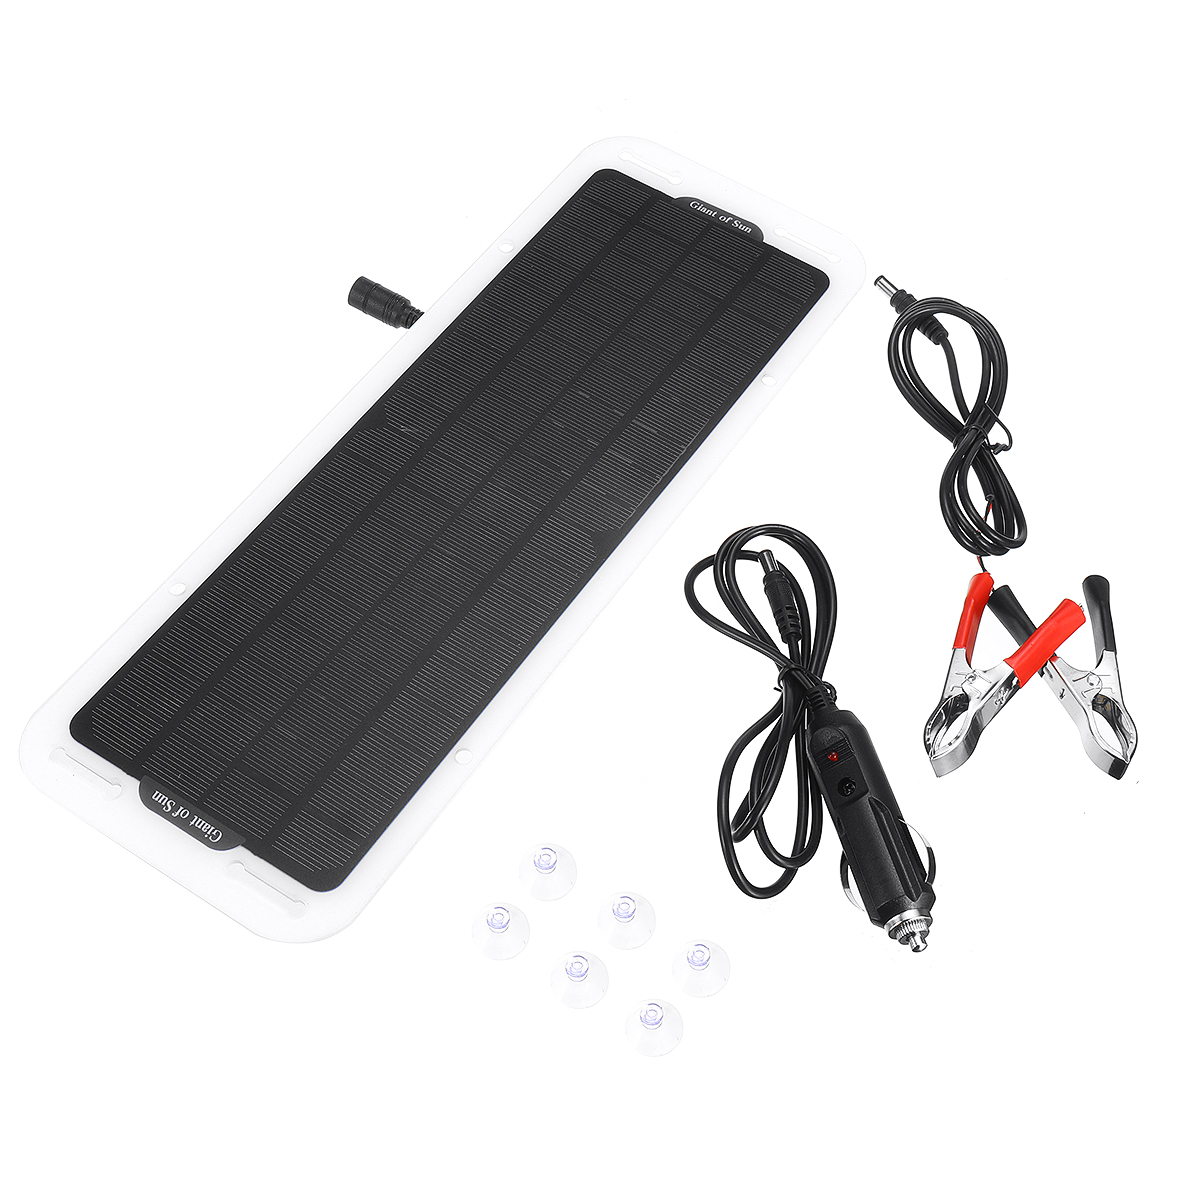 5W 5V Portable Outdoor Solar Energy Charging Panel Fast Outdoor Emergency Charging